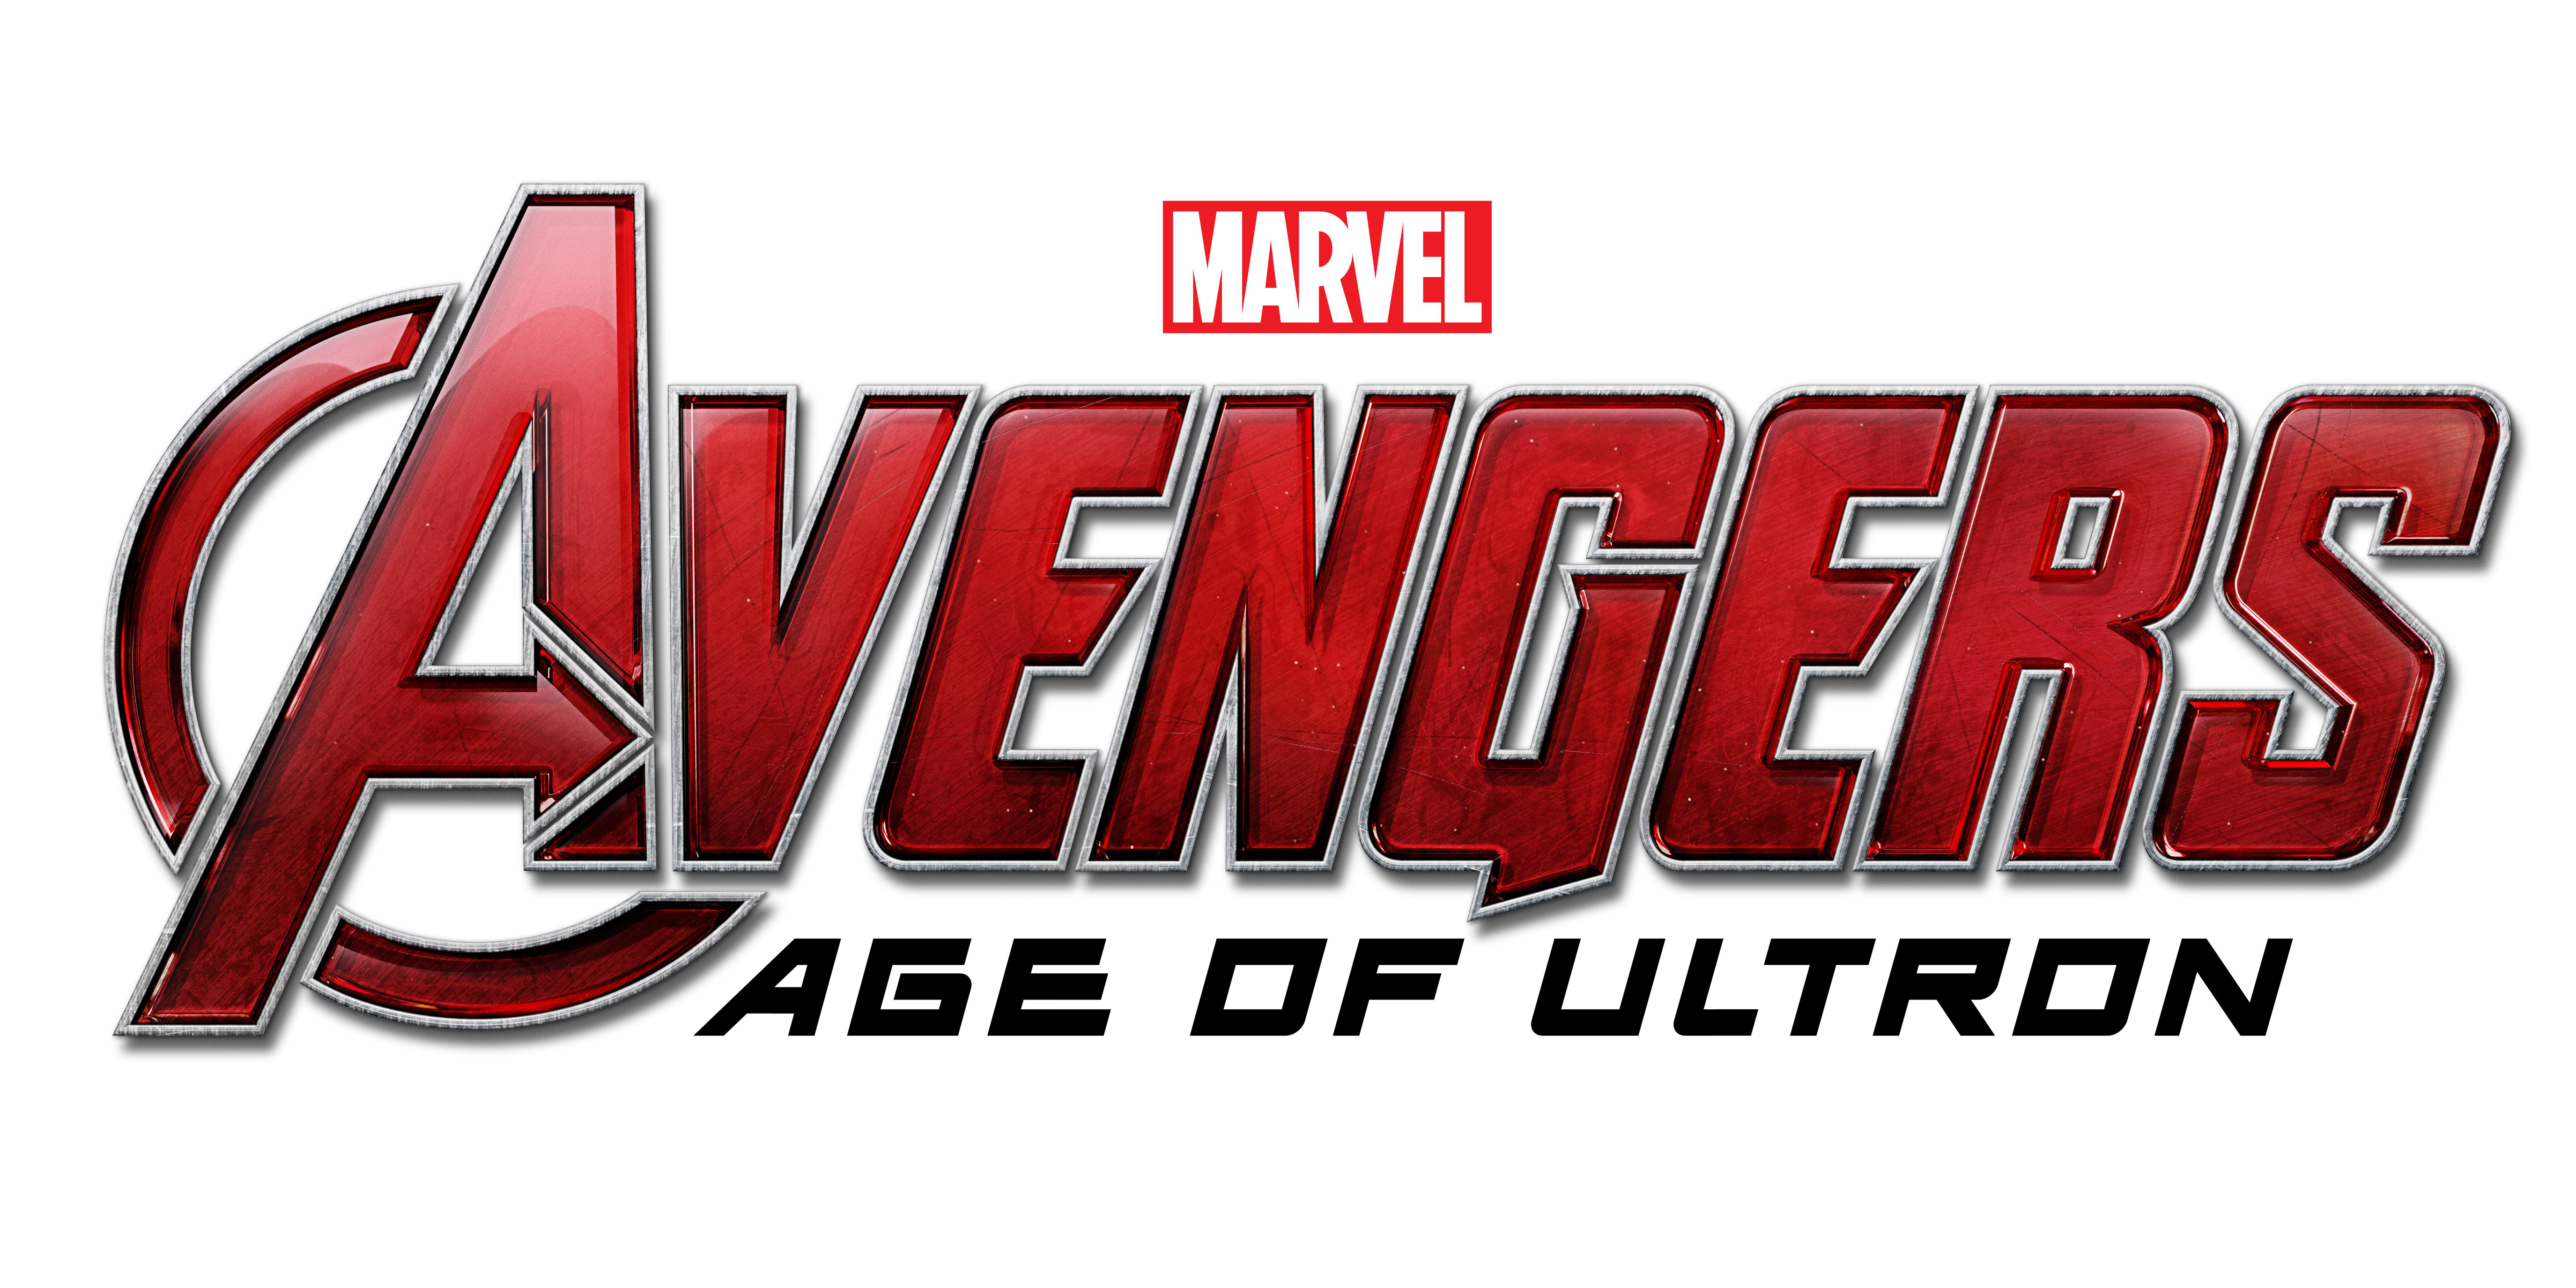 Avengers Age of Ultron wallpaper 1